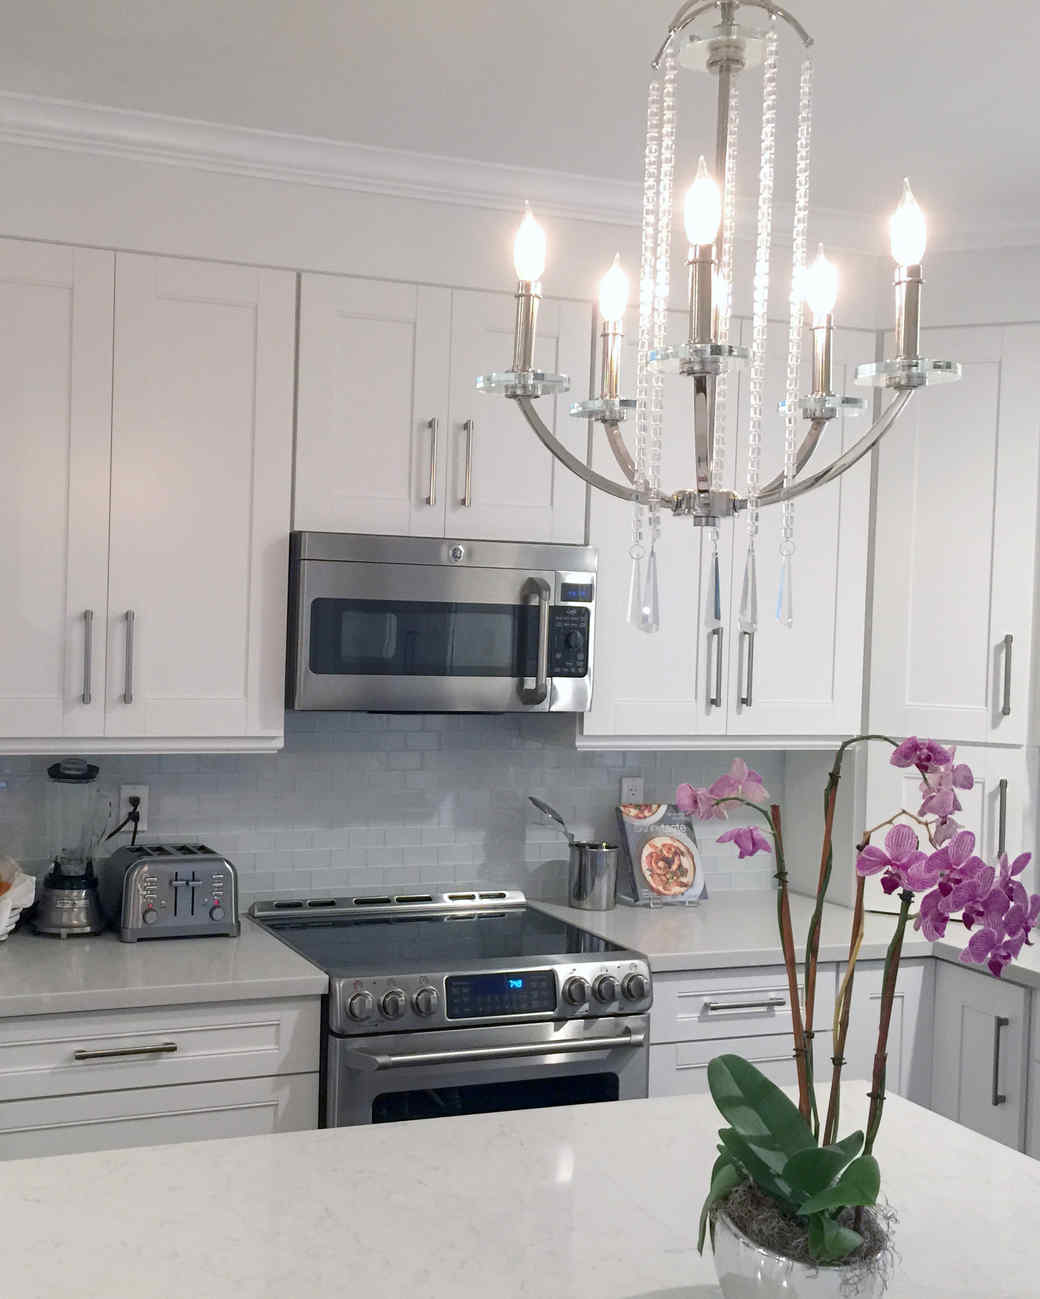 53 Kitchen Lighting Ideas: 6 Bright Kitchen Lighting Ideas: See How New Fixtures